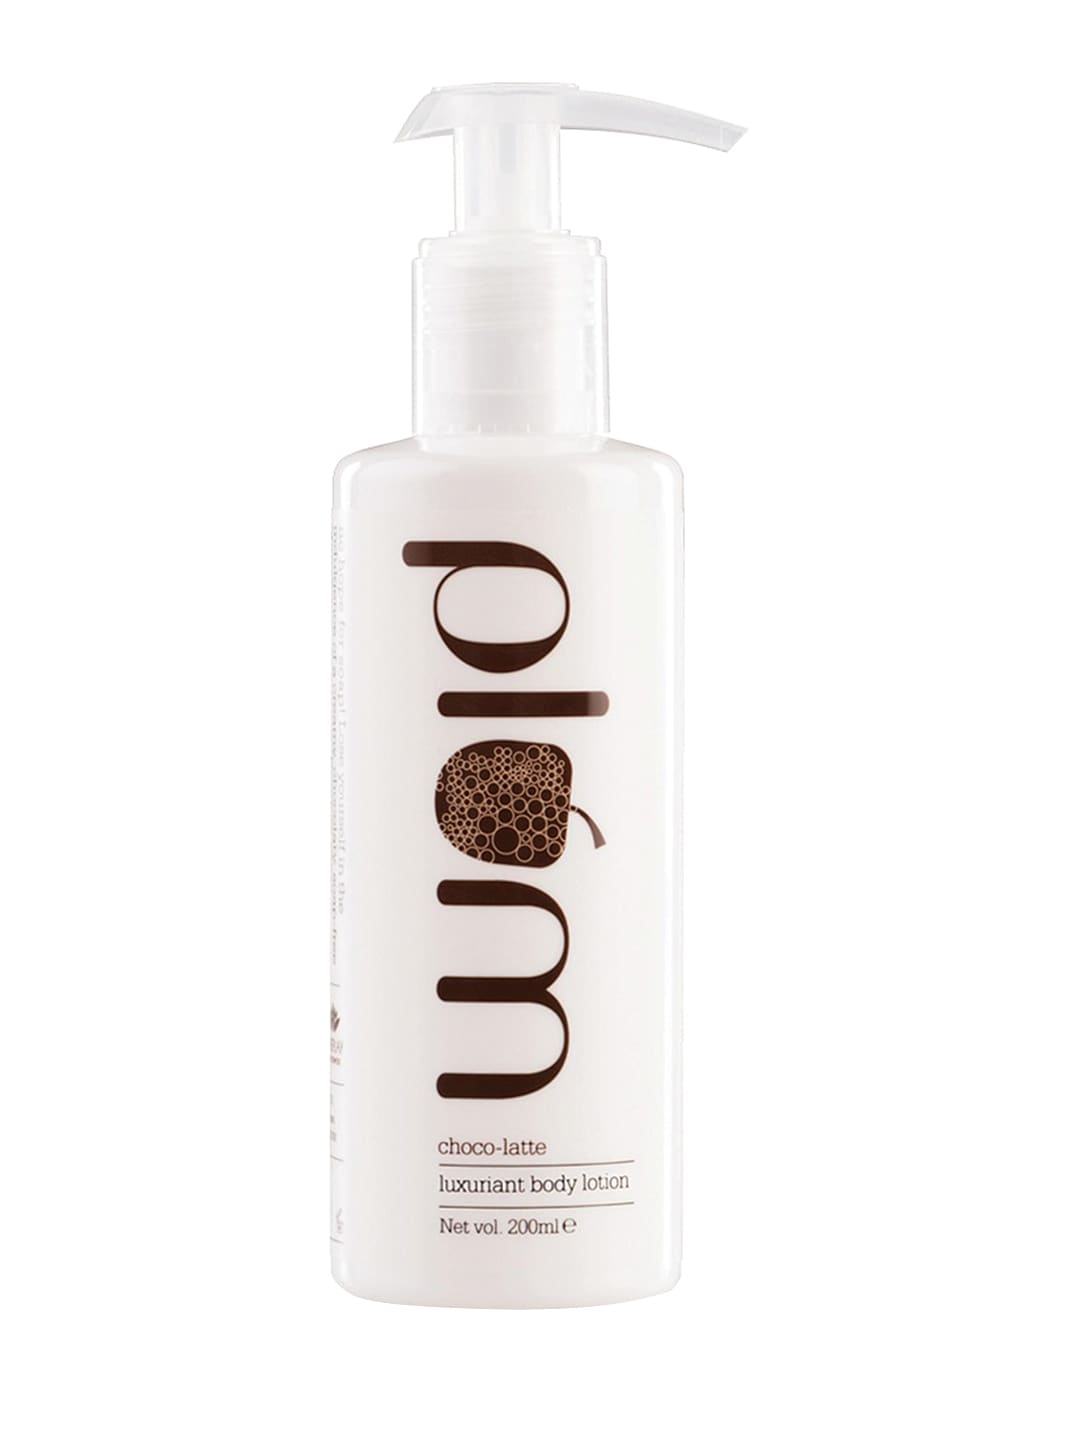 Plum Choco-Latte Luxuriant Body Lotion image